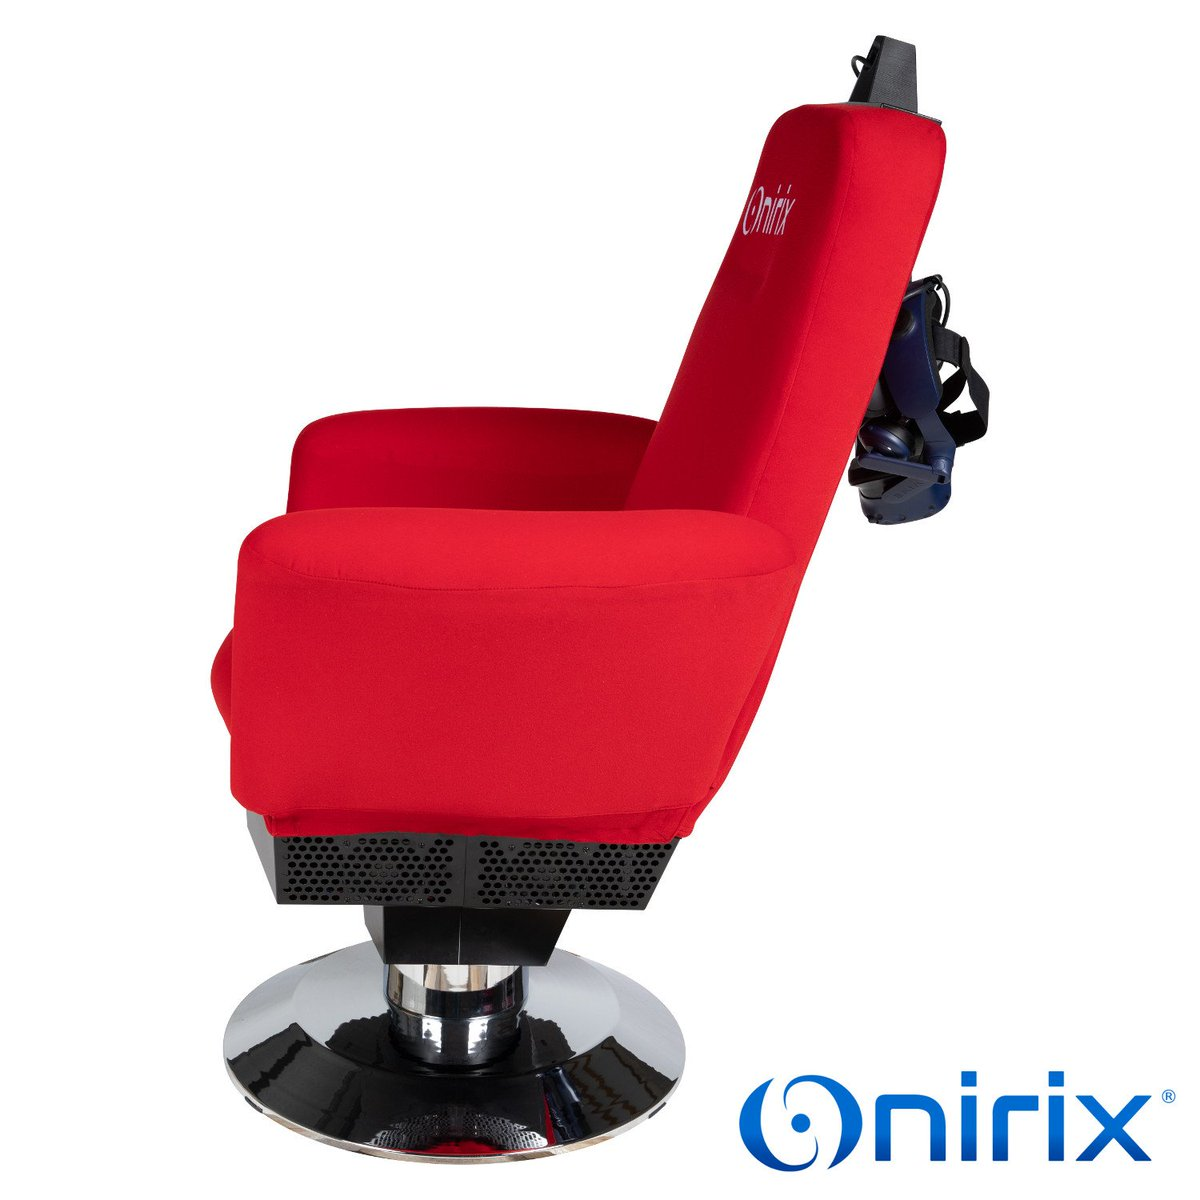 swivel chair vr knoll life replacement parts onirix twitter 0 replies retweets 1 like